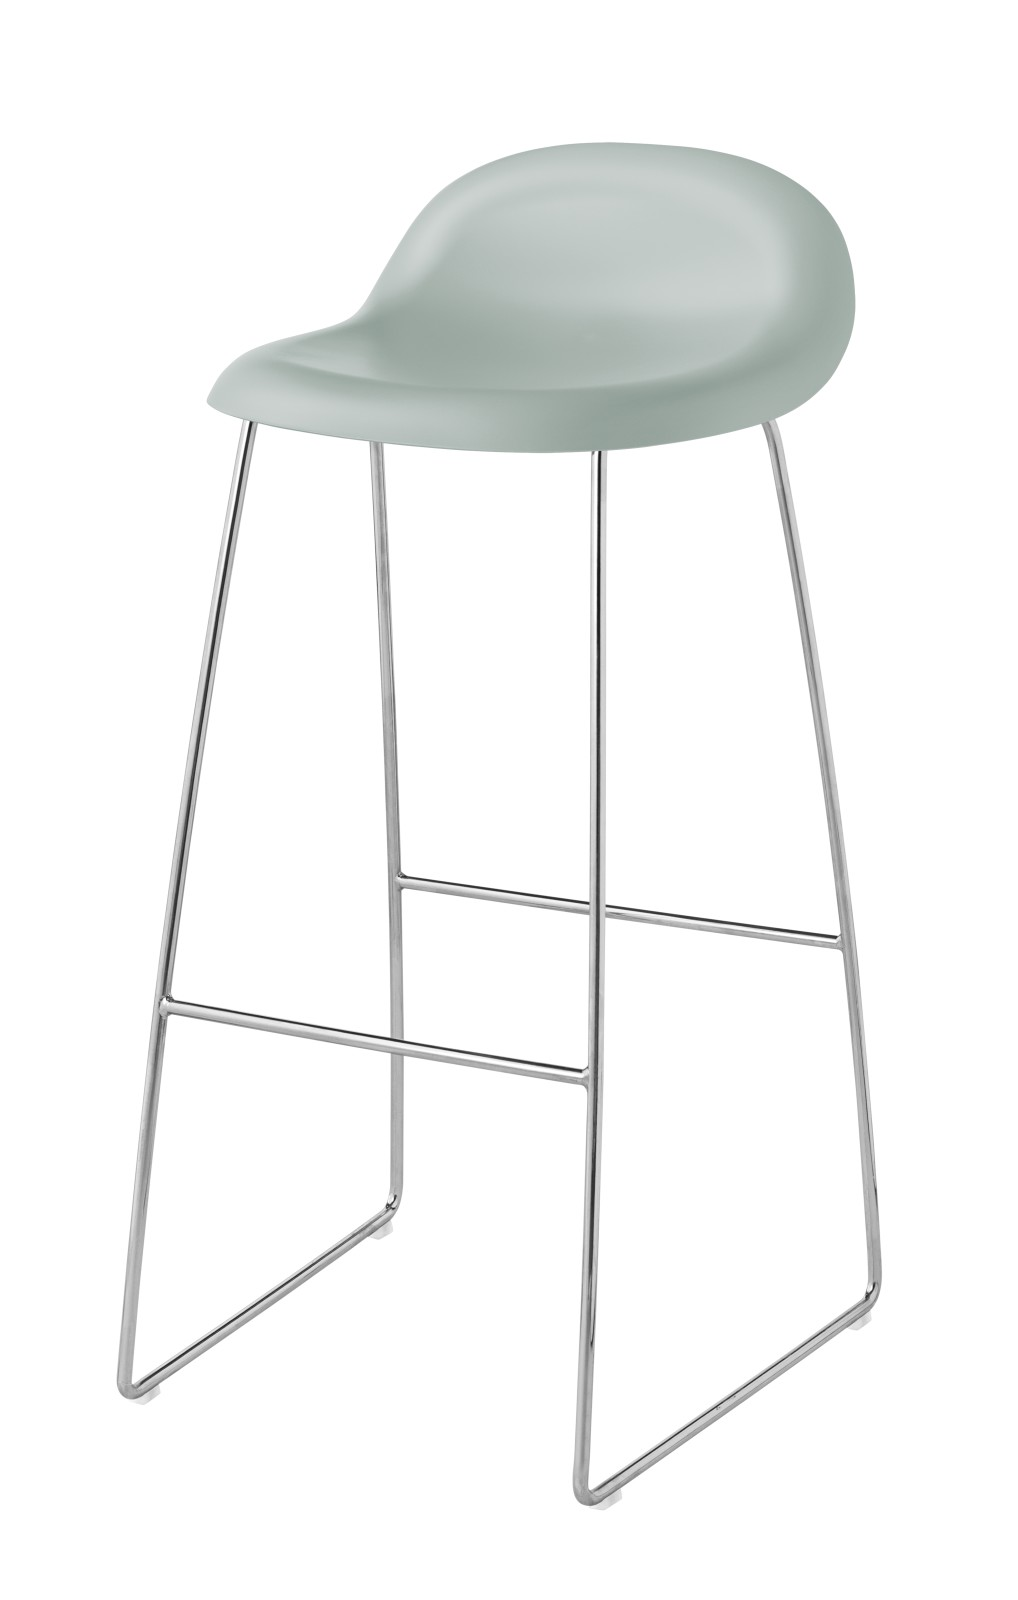 3D Bar Stool - Un-Upholstered, Sledge Base Gubi HiRek Nightfall Blue, Gubi Metal Chrome, Felt Glides